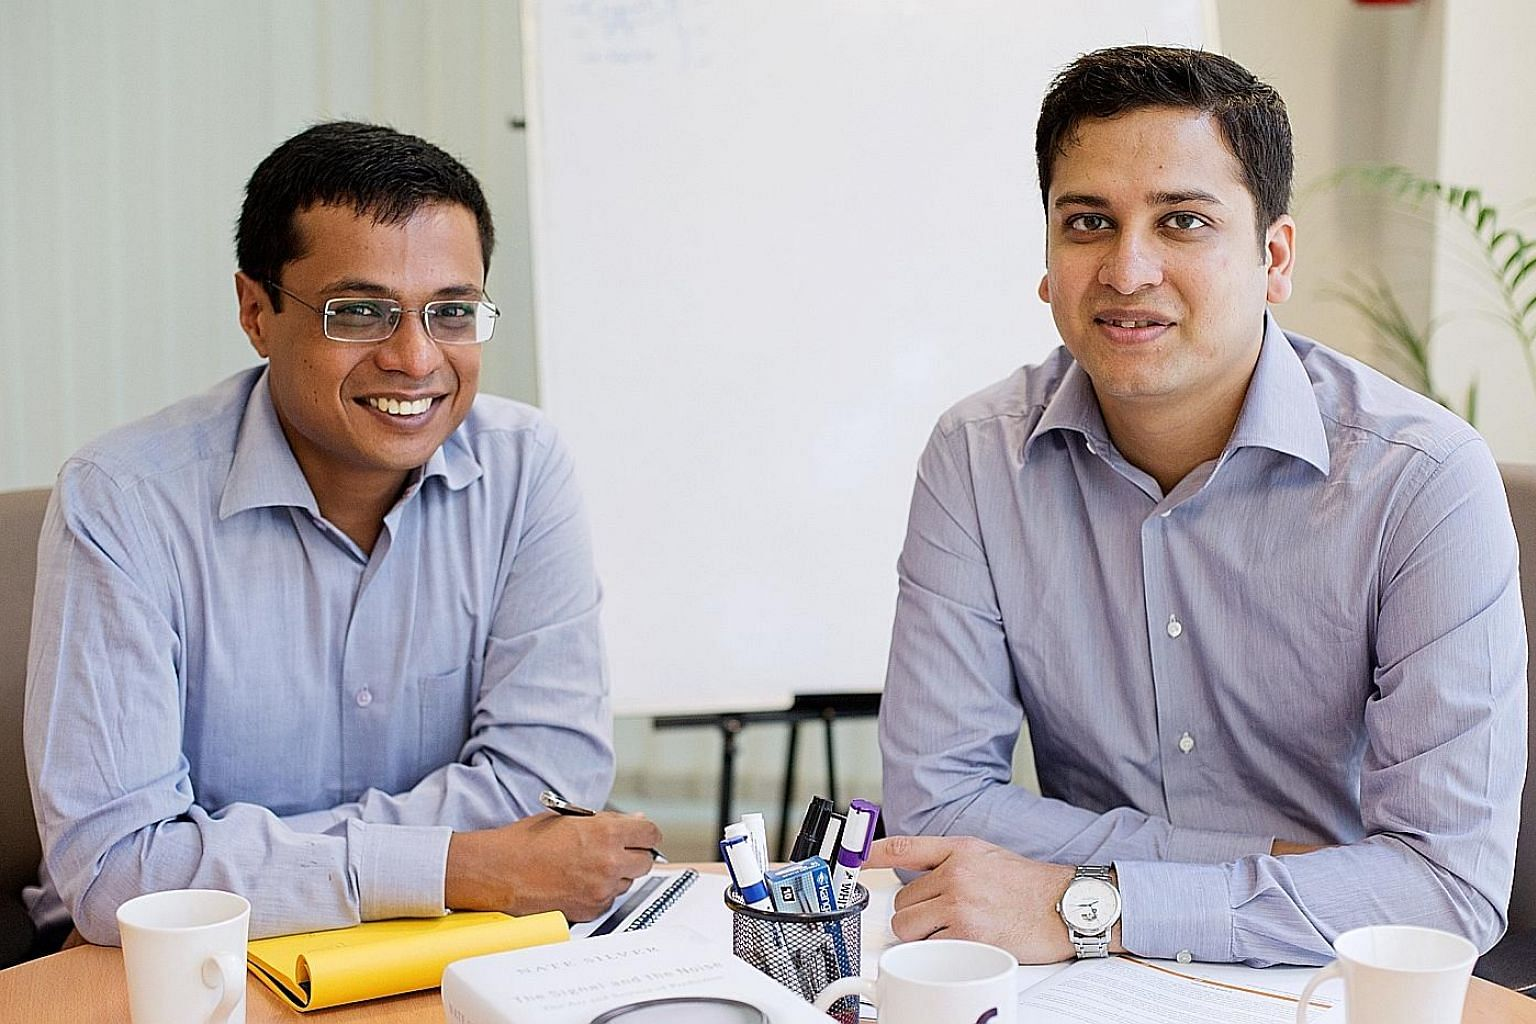 """You need to keep innovating and driving things forward,"" said Mr Binny Bansal (right), seen here with co-founder Sachin Bansal."